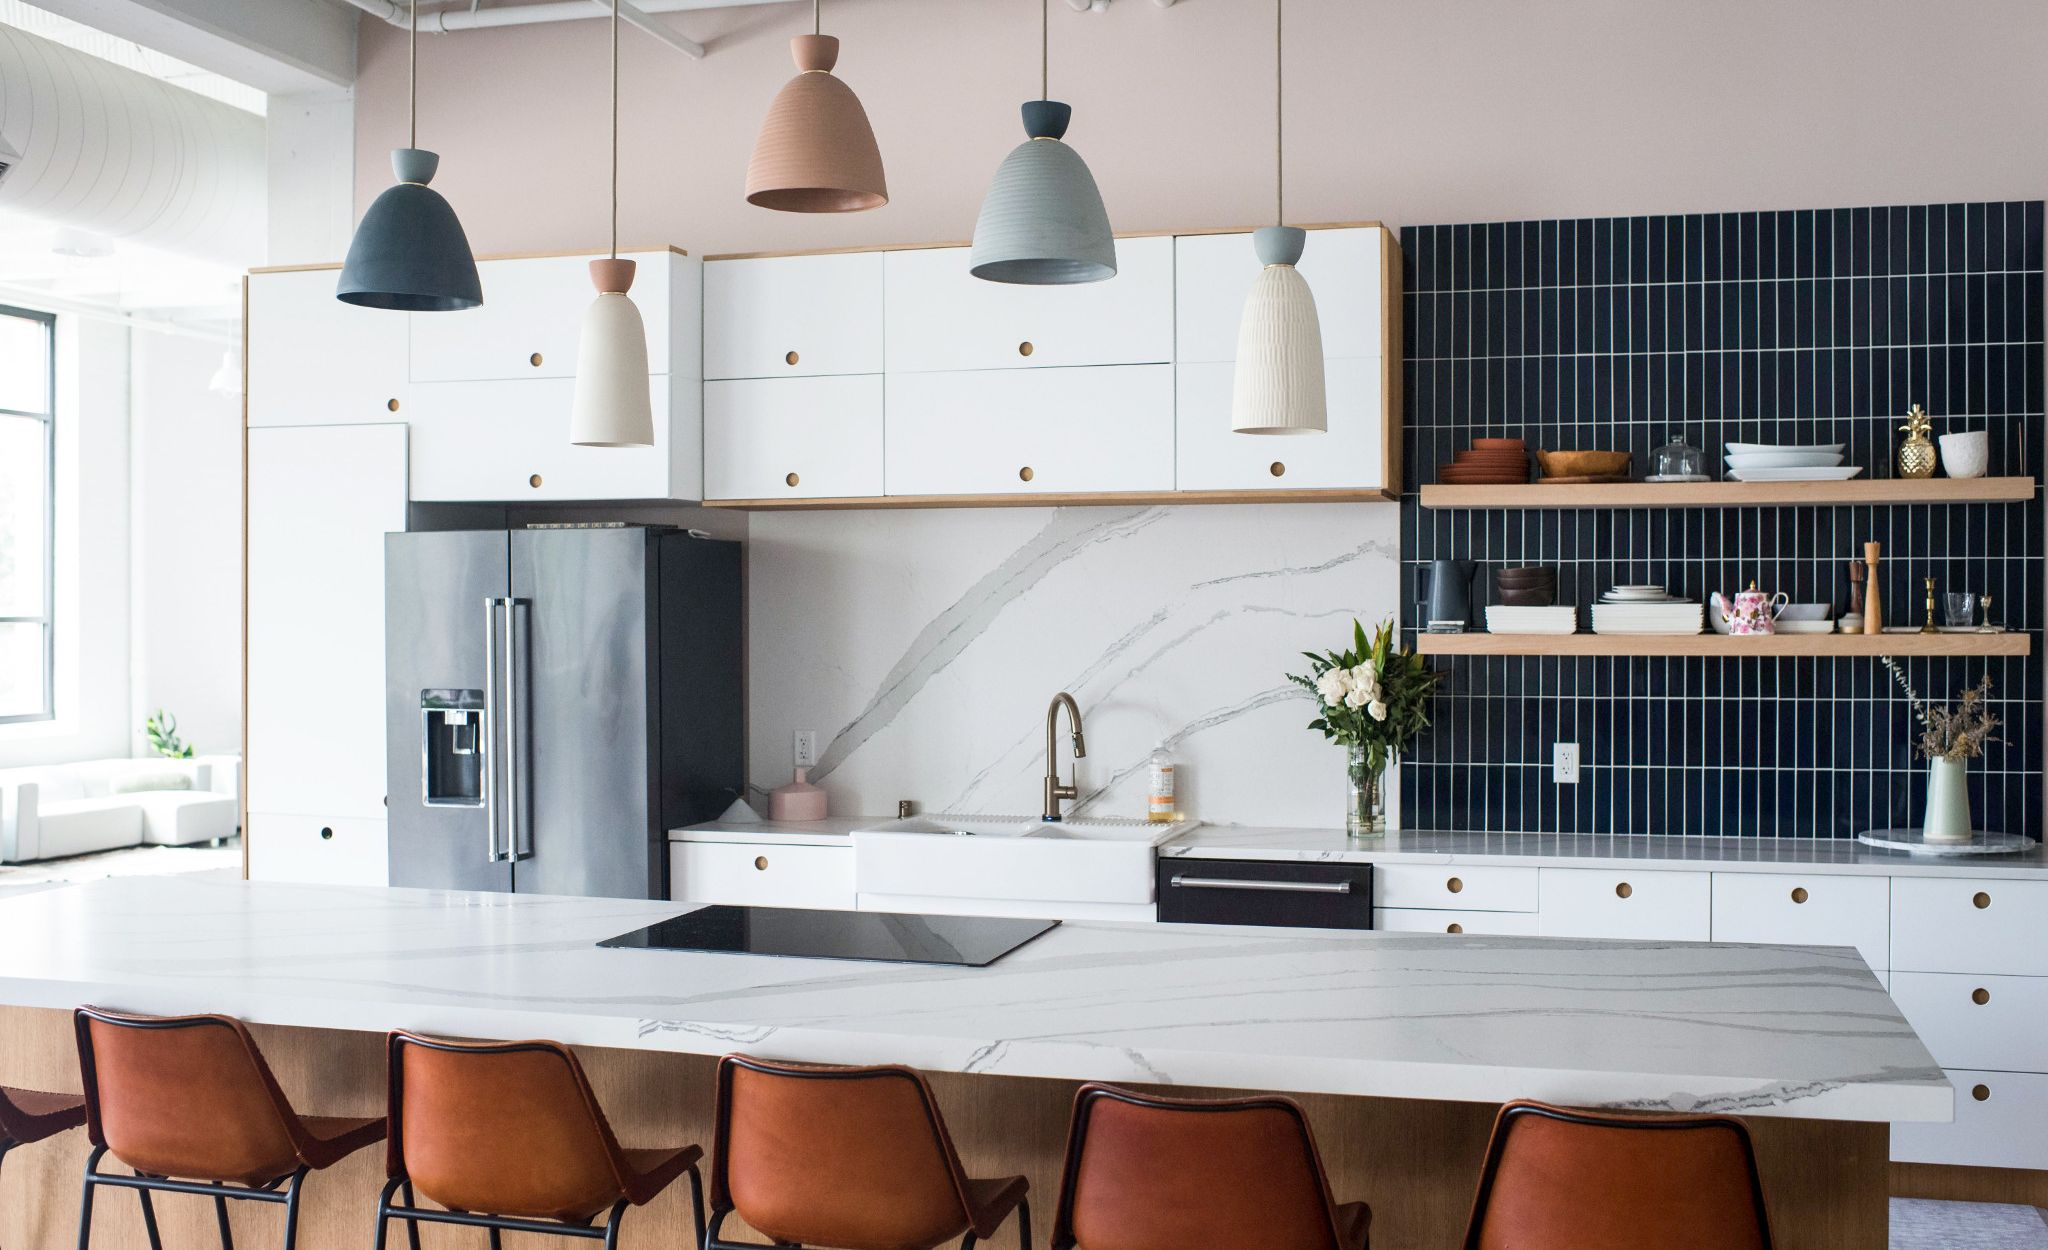 Striking design selections from Brittanicca Matte countertops and backsplash to navy Fireclay Tile and Rejuvenation ceramic pendants create a memorable kitchen focal point.